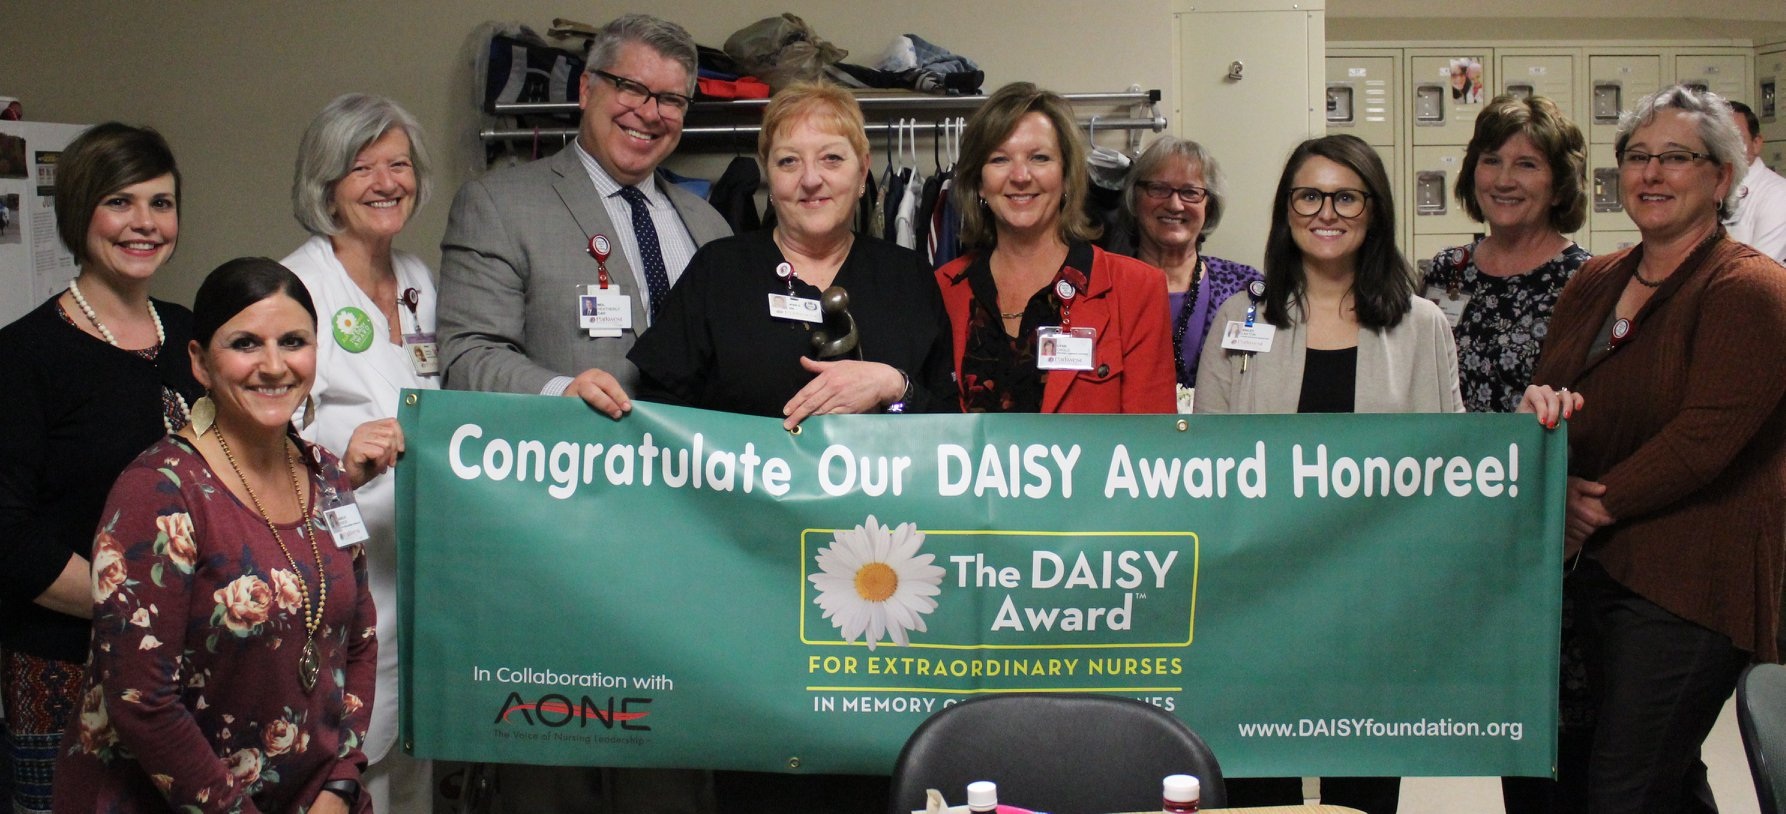 Daisy Award Winner Jodi Counts – are YOU next?